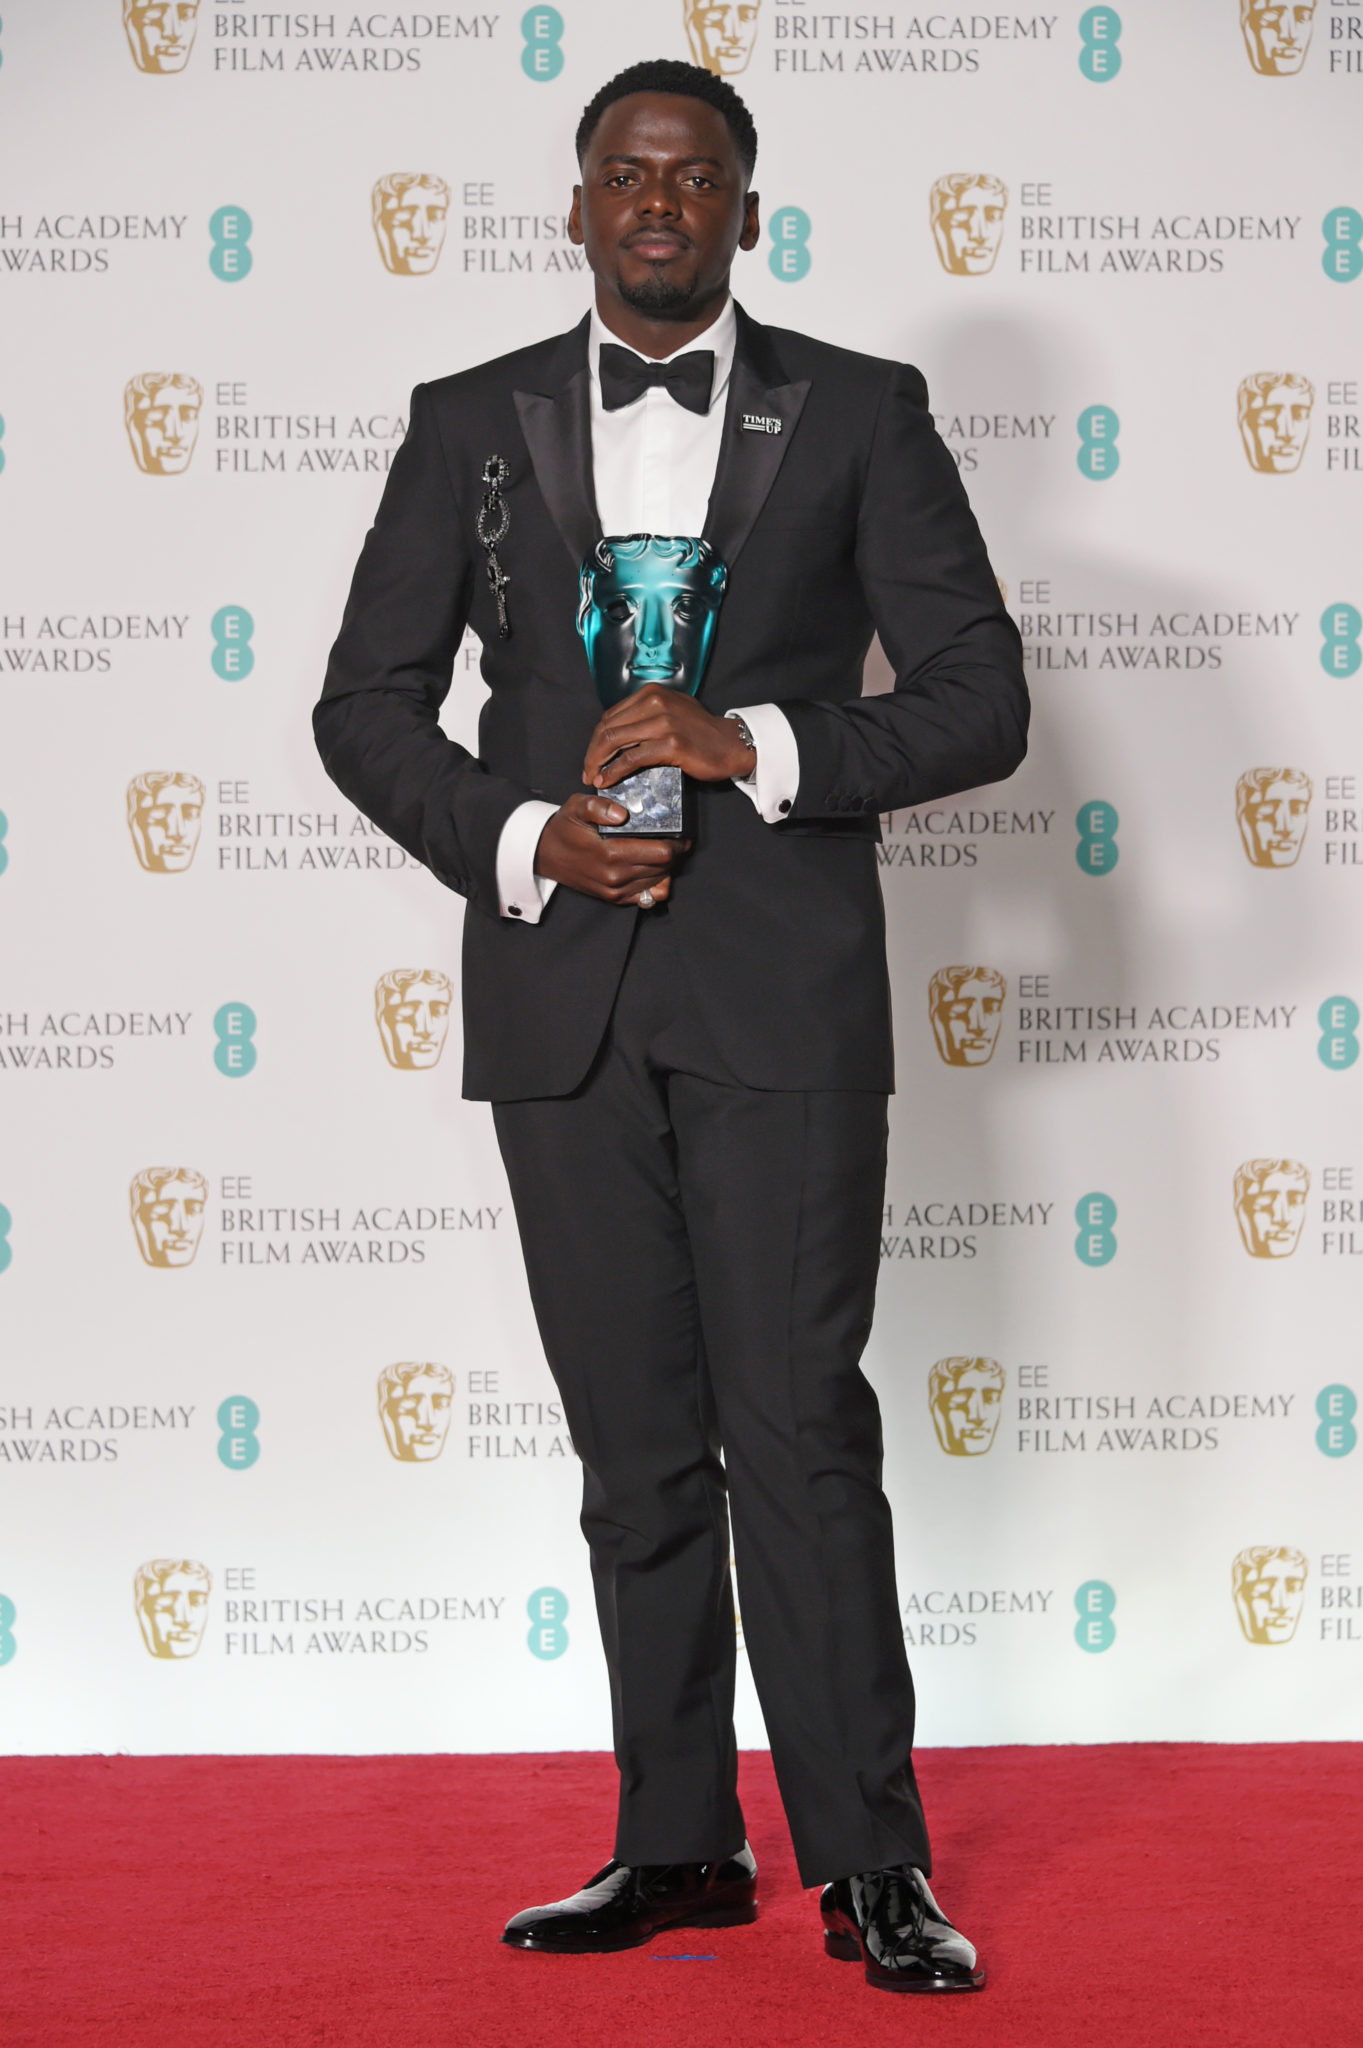 LONDON, ENGLAND - FEBRUARY 18: Daniel Kaluuya, winner of the Rising Star award, poses in the press room during the EE British Academy Film Awards (BAFTA) held at Royal Albert Hall on February 18, 2018 in London, England. (Photo by David M. Benett/Dave Benett/Getty Images)